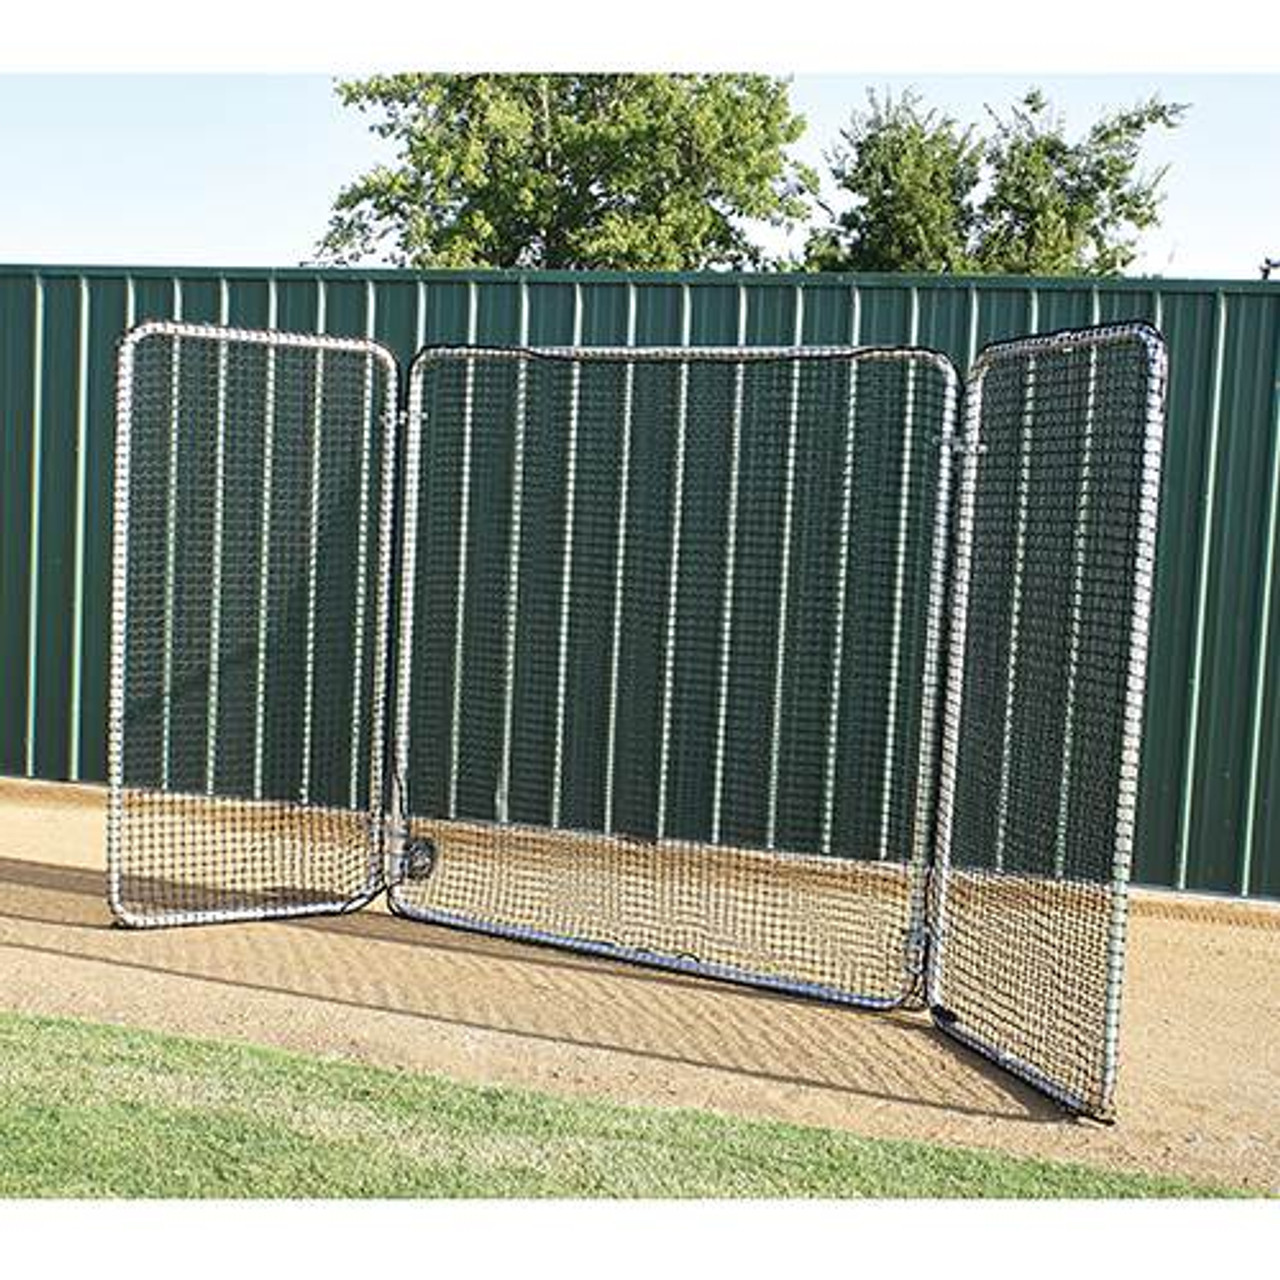 Baseball Protector Replacement Net - Tri Fold (sold in pairs)